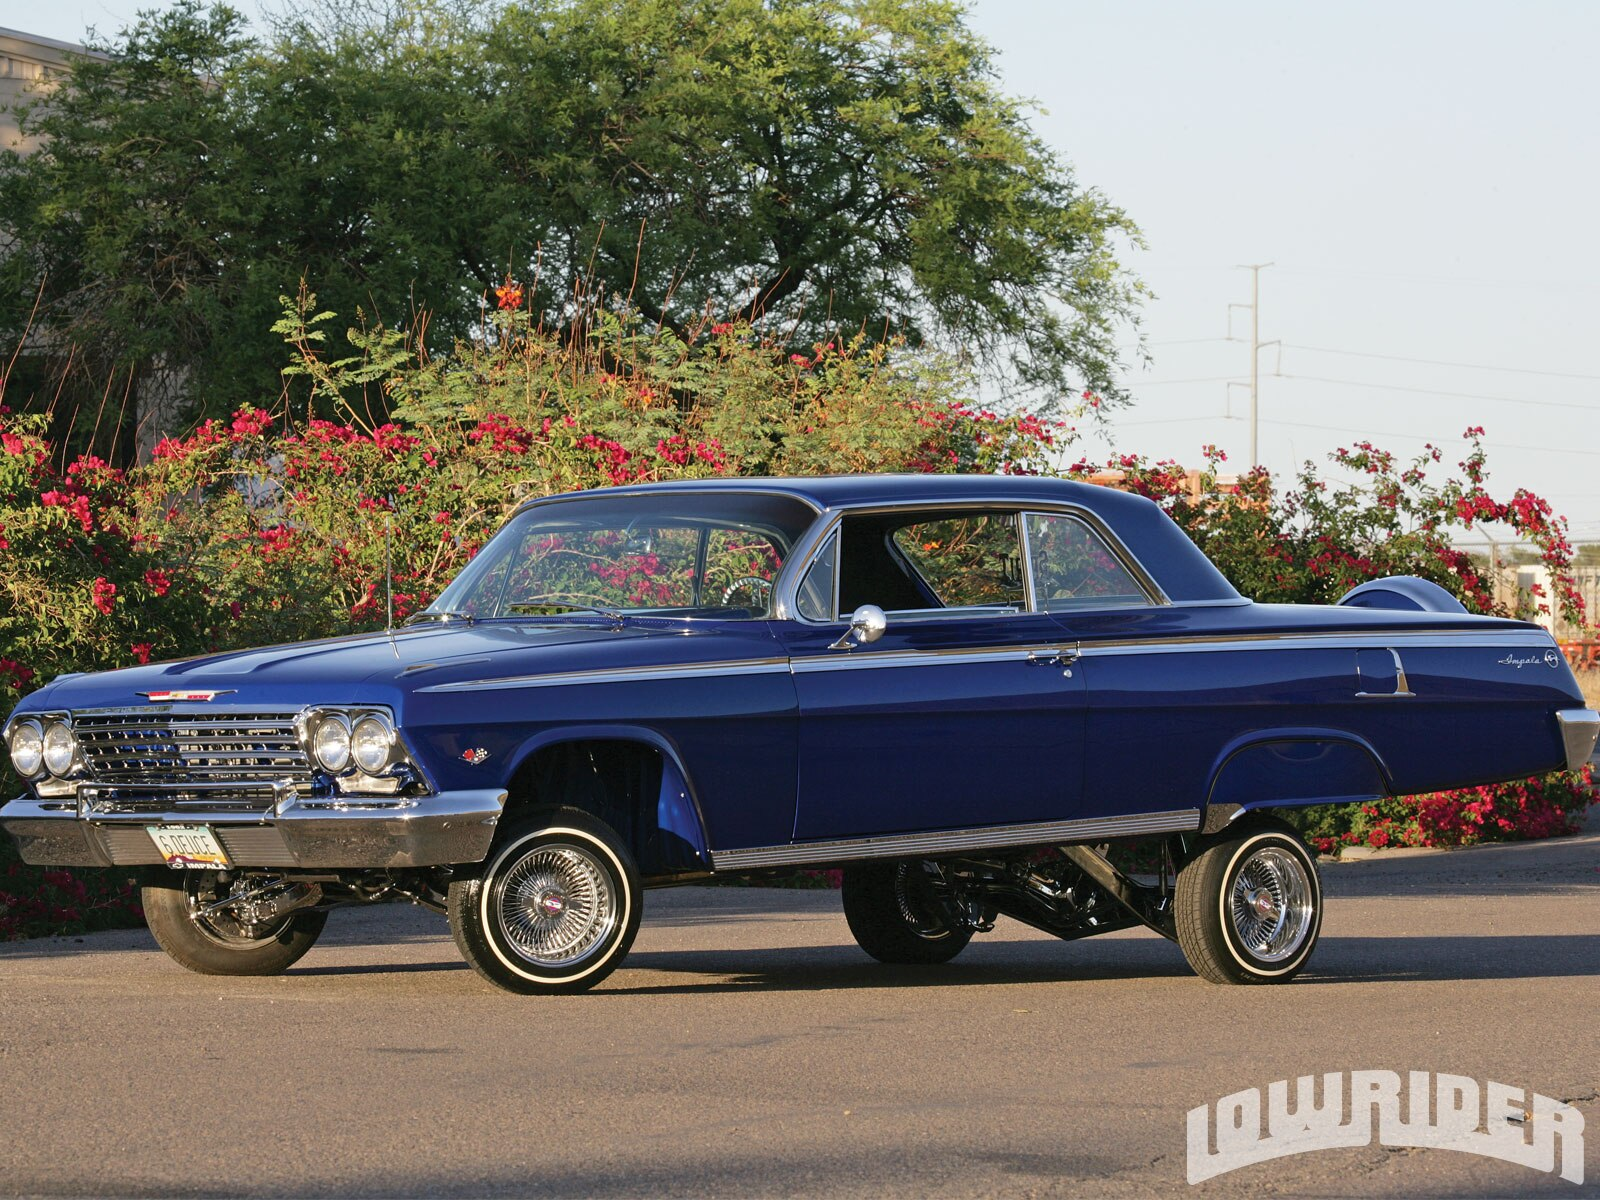 Lowrider Car Hd Wallpaper 1962 Chevrolet Impala Lowrider Magazine